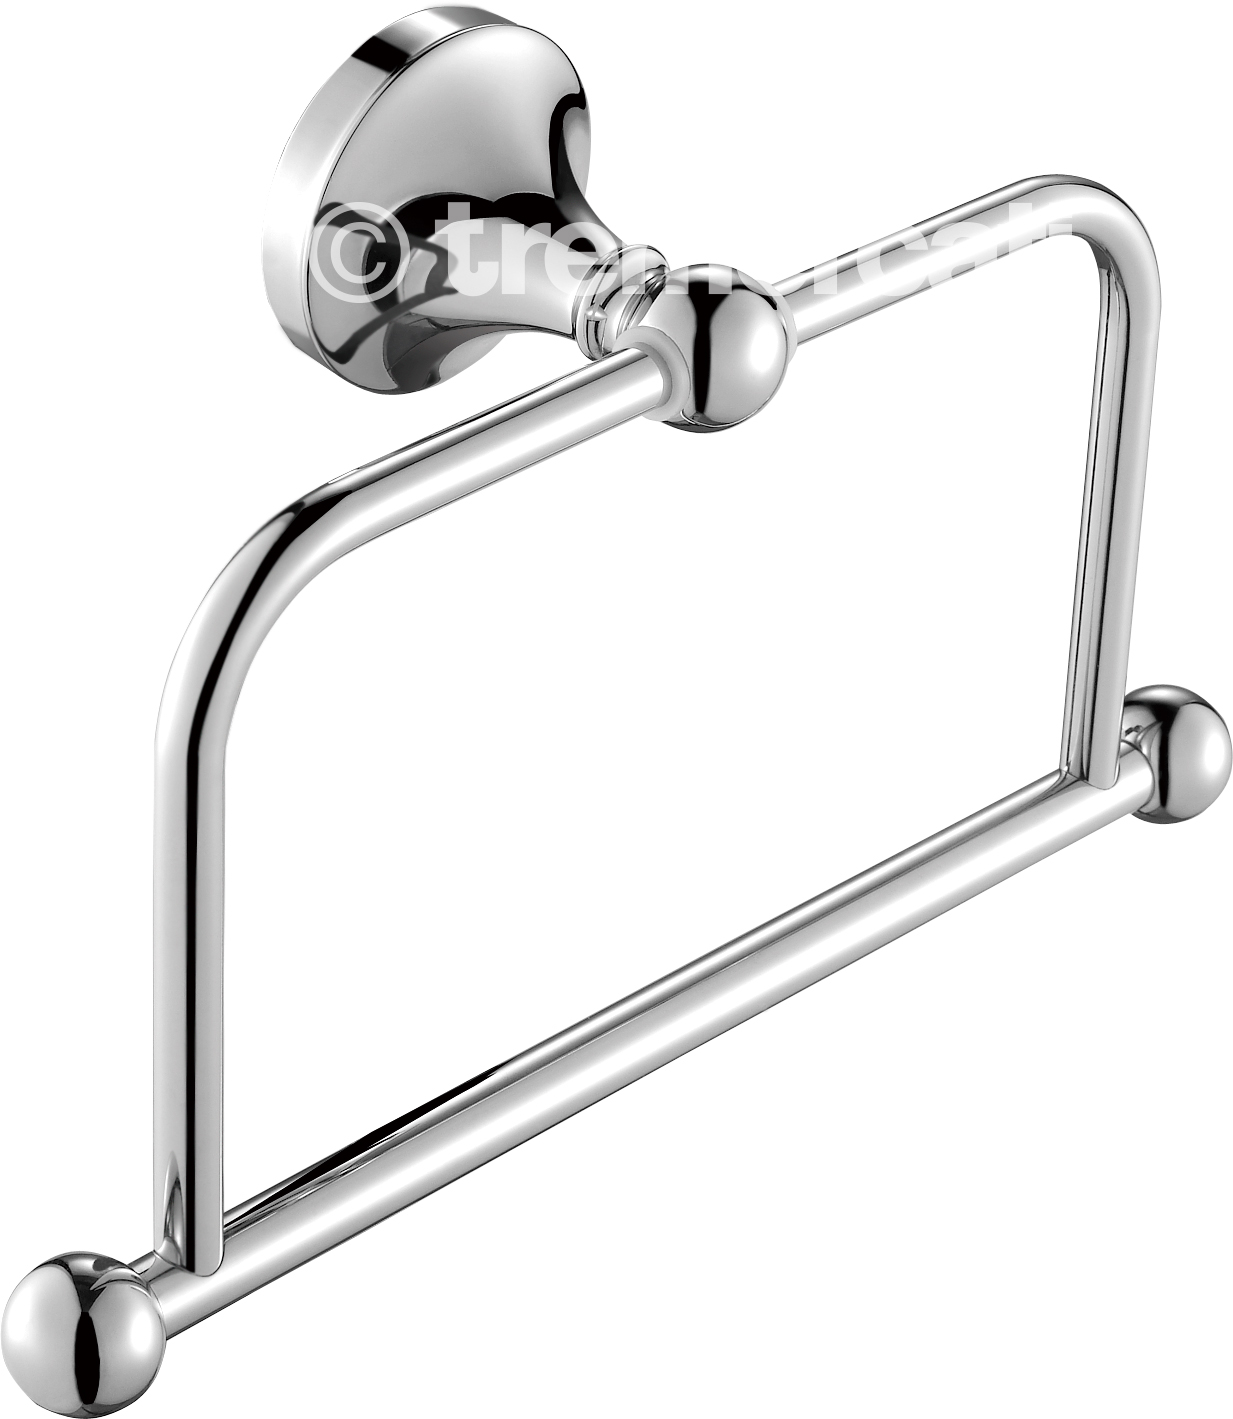 TRE MERCATI IMPERIAL TOWEL RING - CHROME PLATED